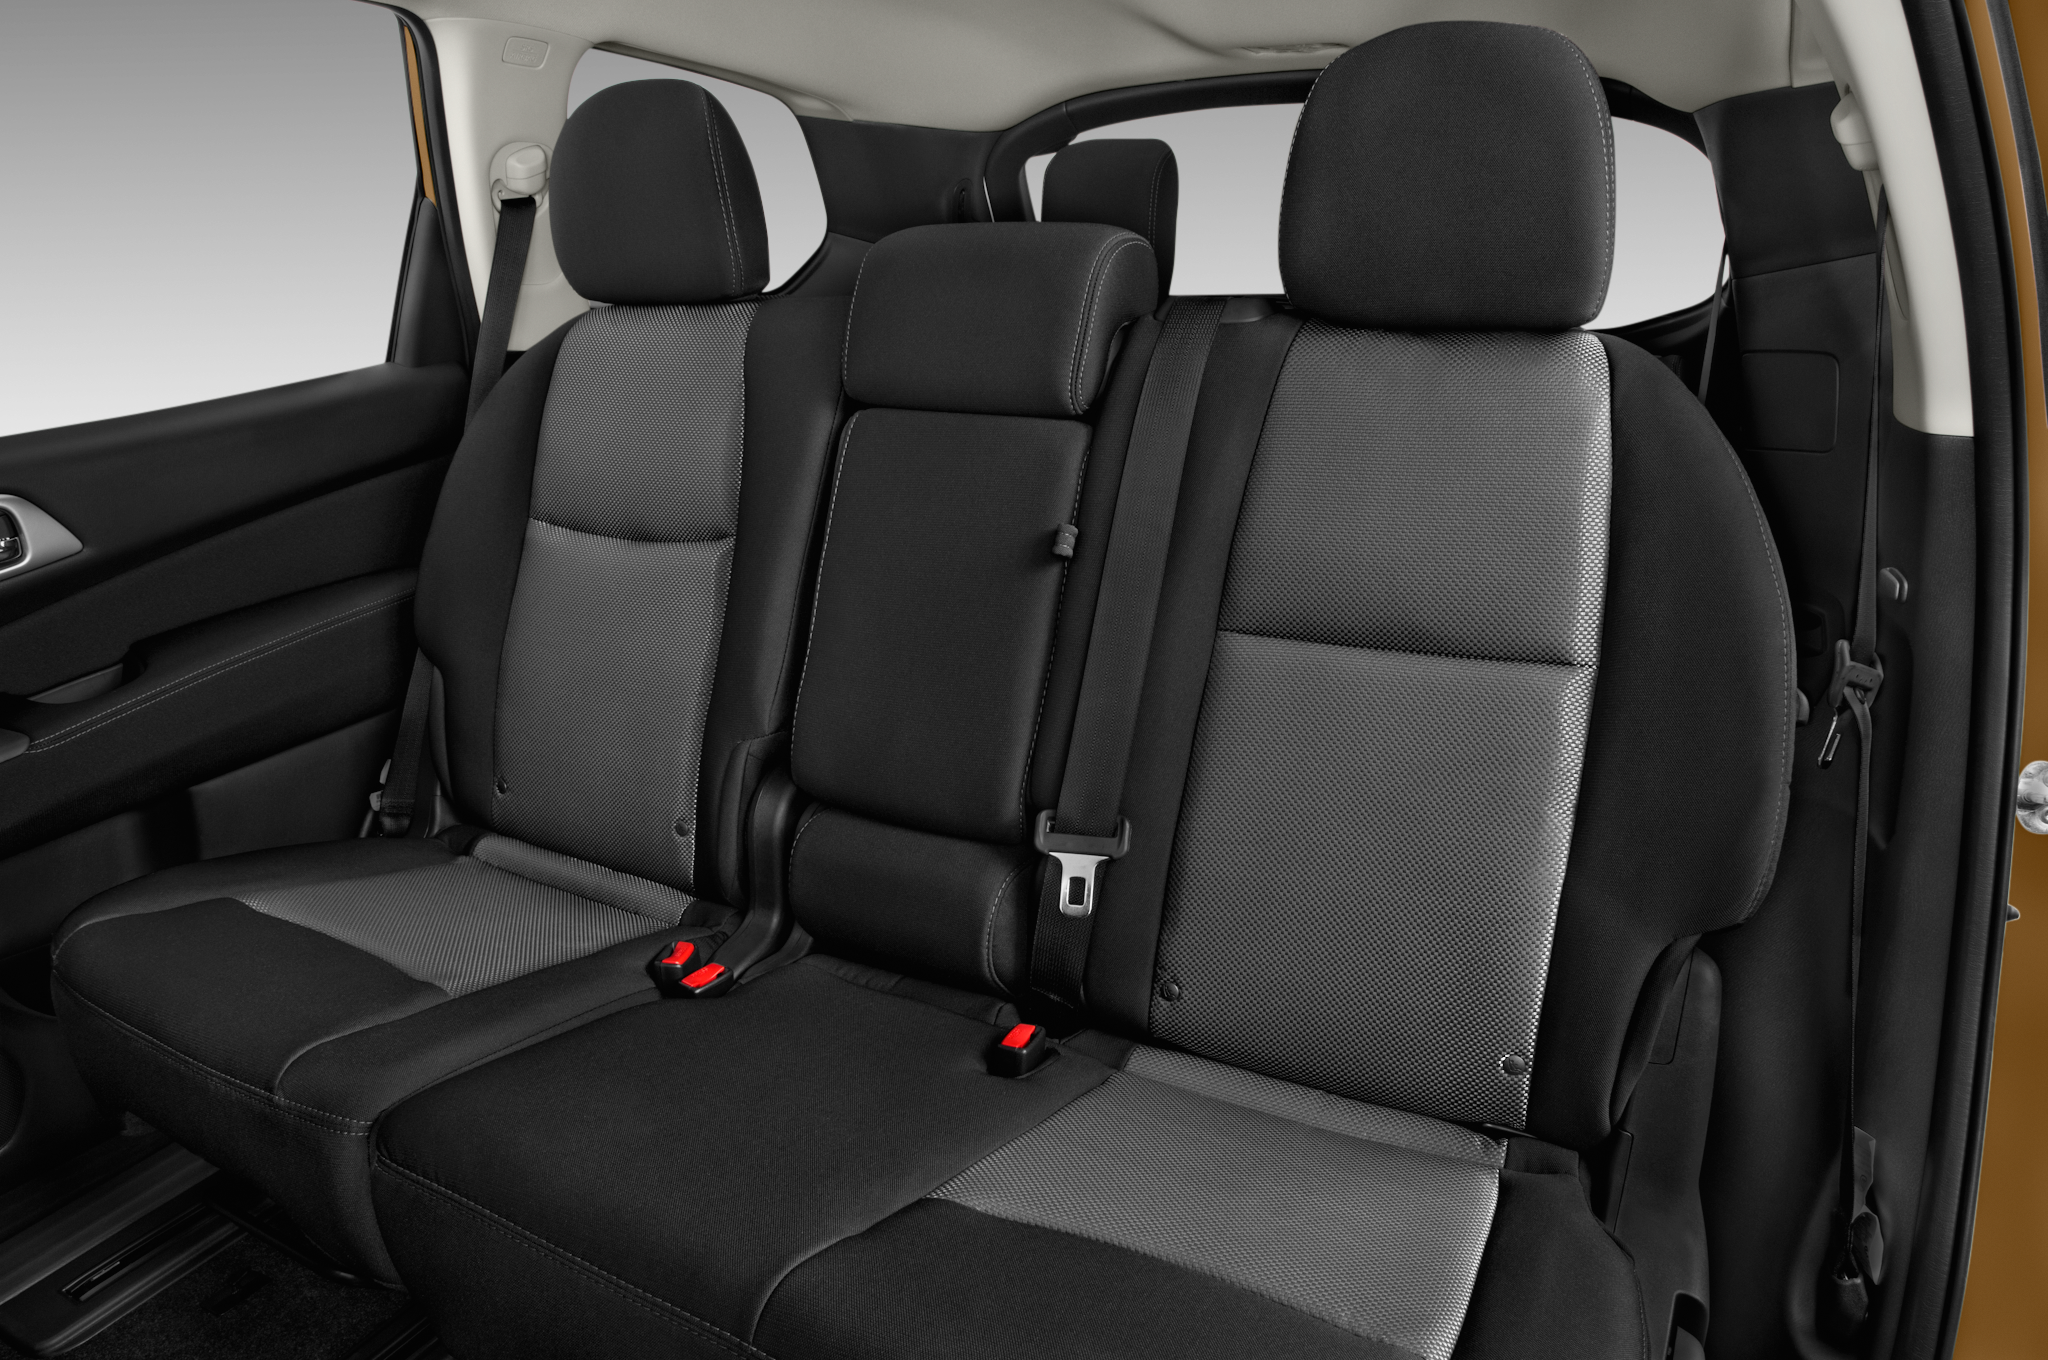 2018 nissan pathfinder 39 s rear door alert reminds you that you used the back seat automobile. Black Bedroom Furniture Sets. Home Design Ideas